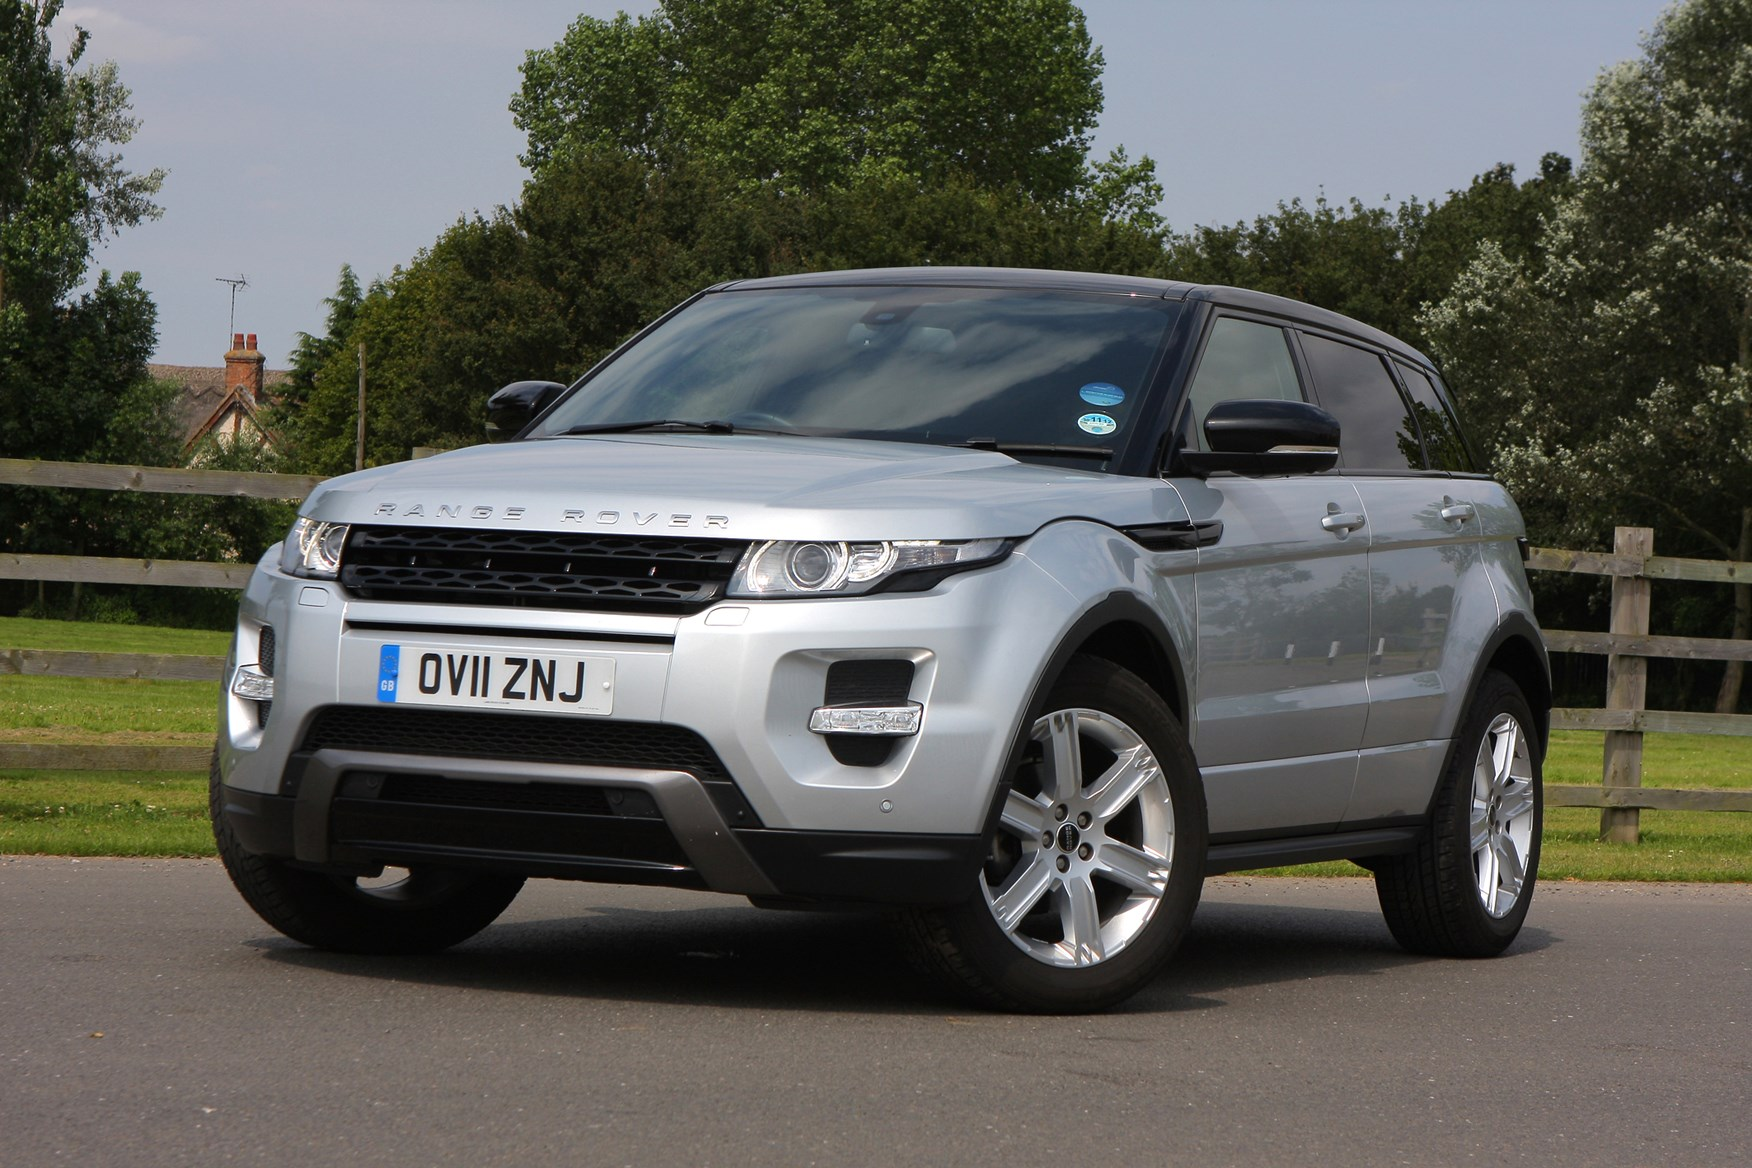 Used land rover range rover evoque for sale parkers for Interieur range rover evoque